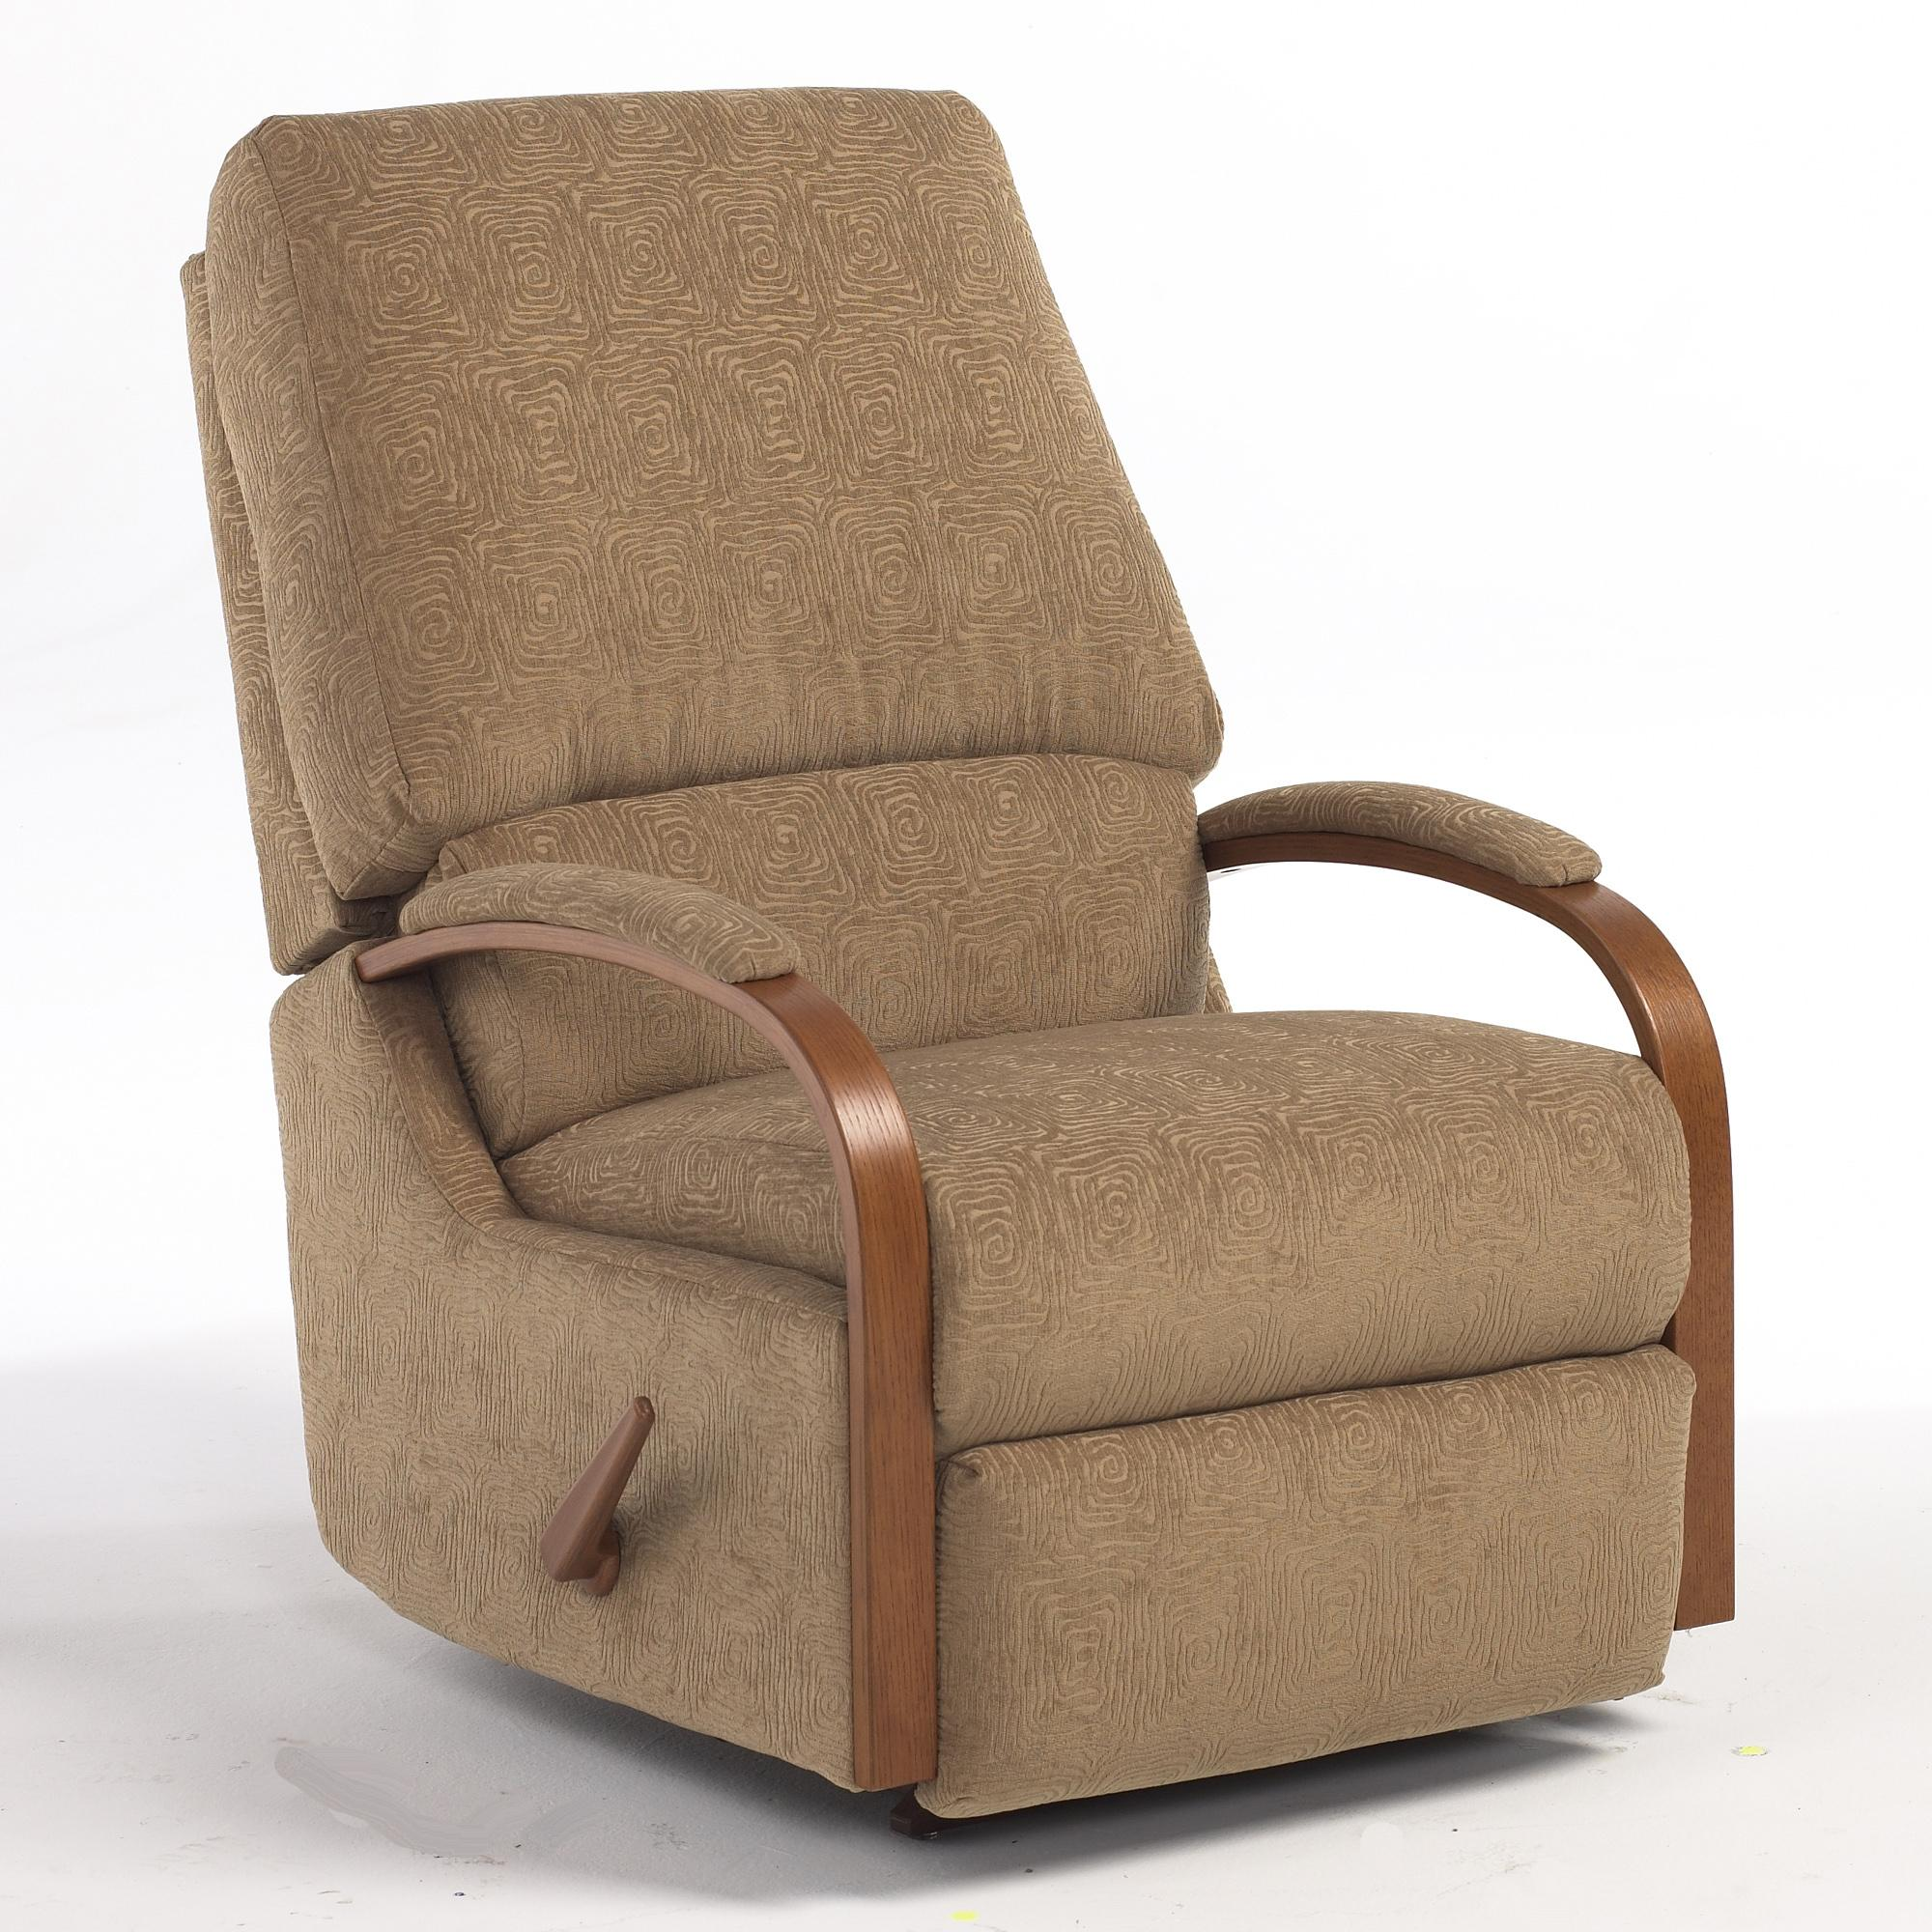 Reclining Rocking Chair Pike Swivel Rocking Reclining Chair By Best Home